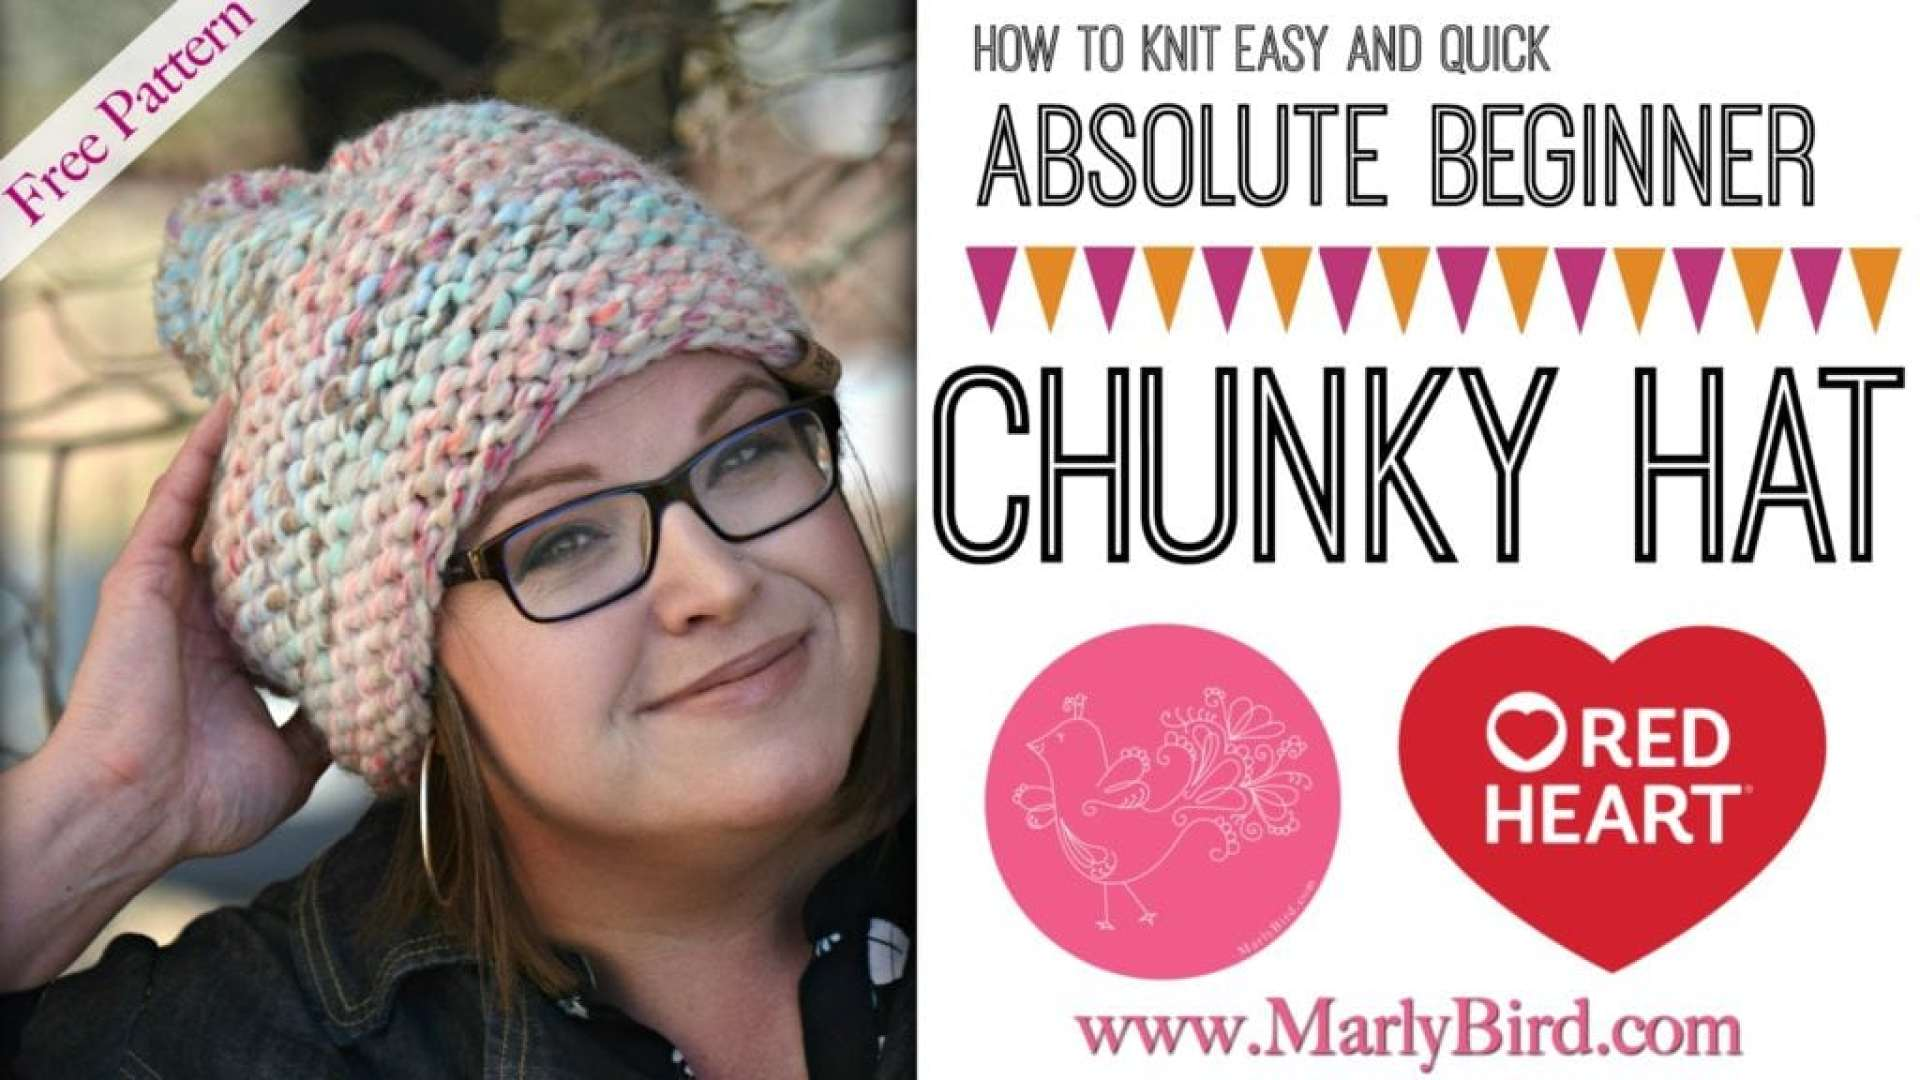 Absolute Beginner Chunky Knit Hat Pattern by Marly Bird Includes Free Video Tutorial